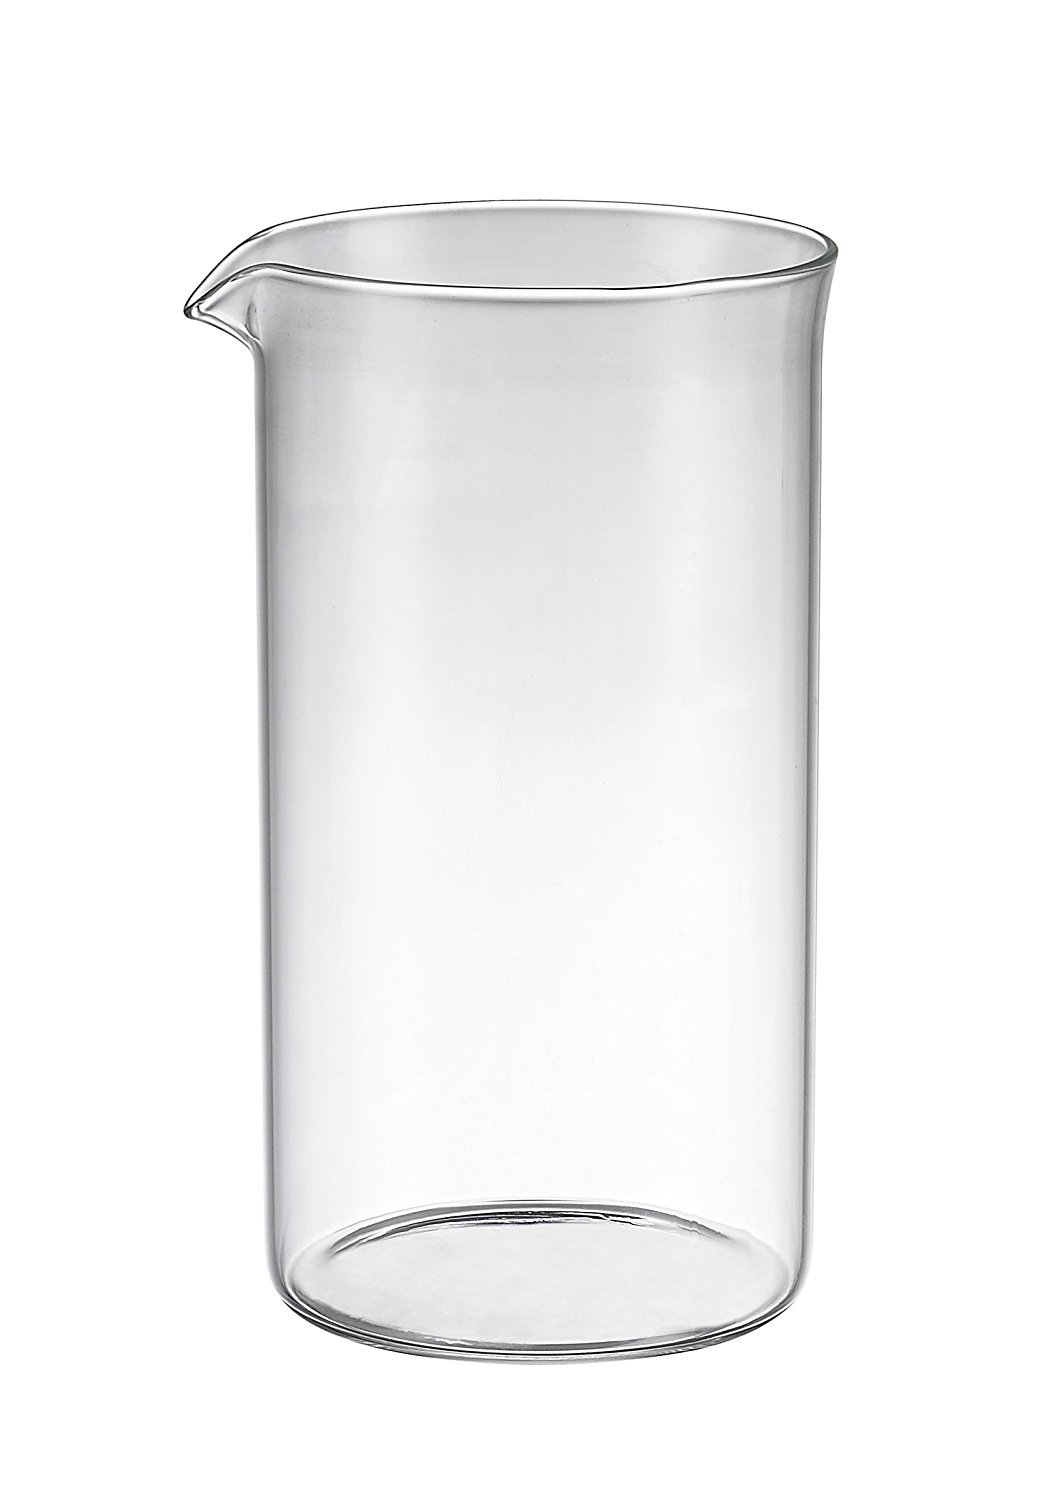 Bruntmor Universal Replacement beaker Spare Heat & Shock resistant Borosilicate Glass Carafe for French Press Coffee Maker, 8-cup, 34-ounce (Fits most Bodum's and all other 8 cup French Press that has a drip spout) BRB34